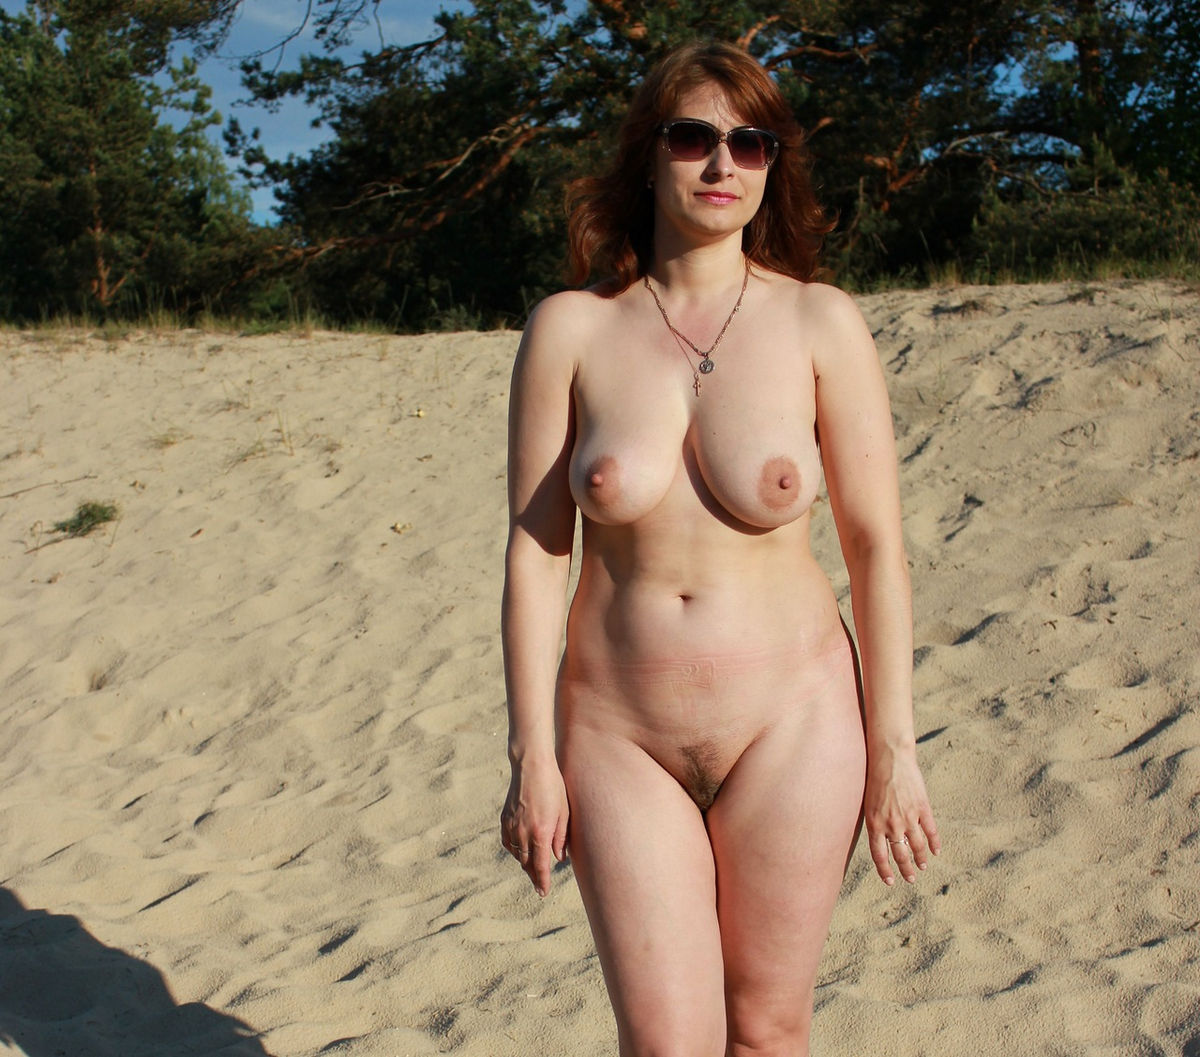 Are Hot nude wife on beach confirm